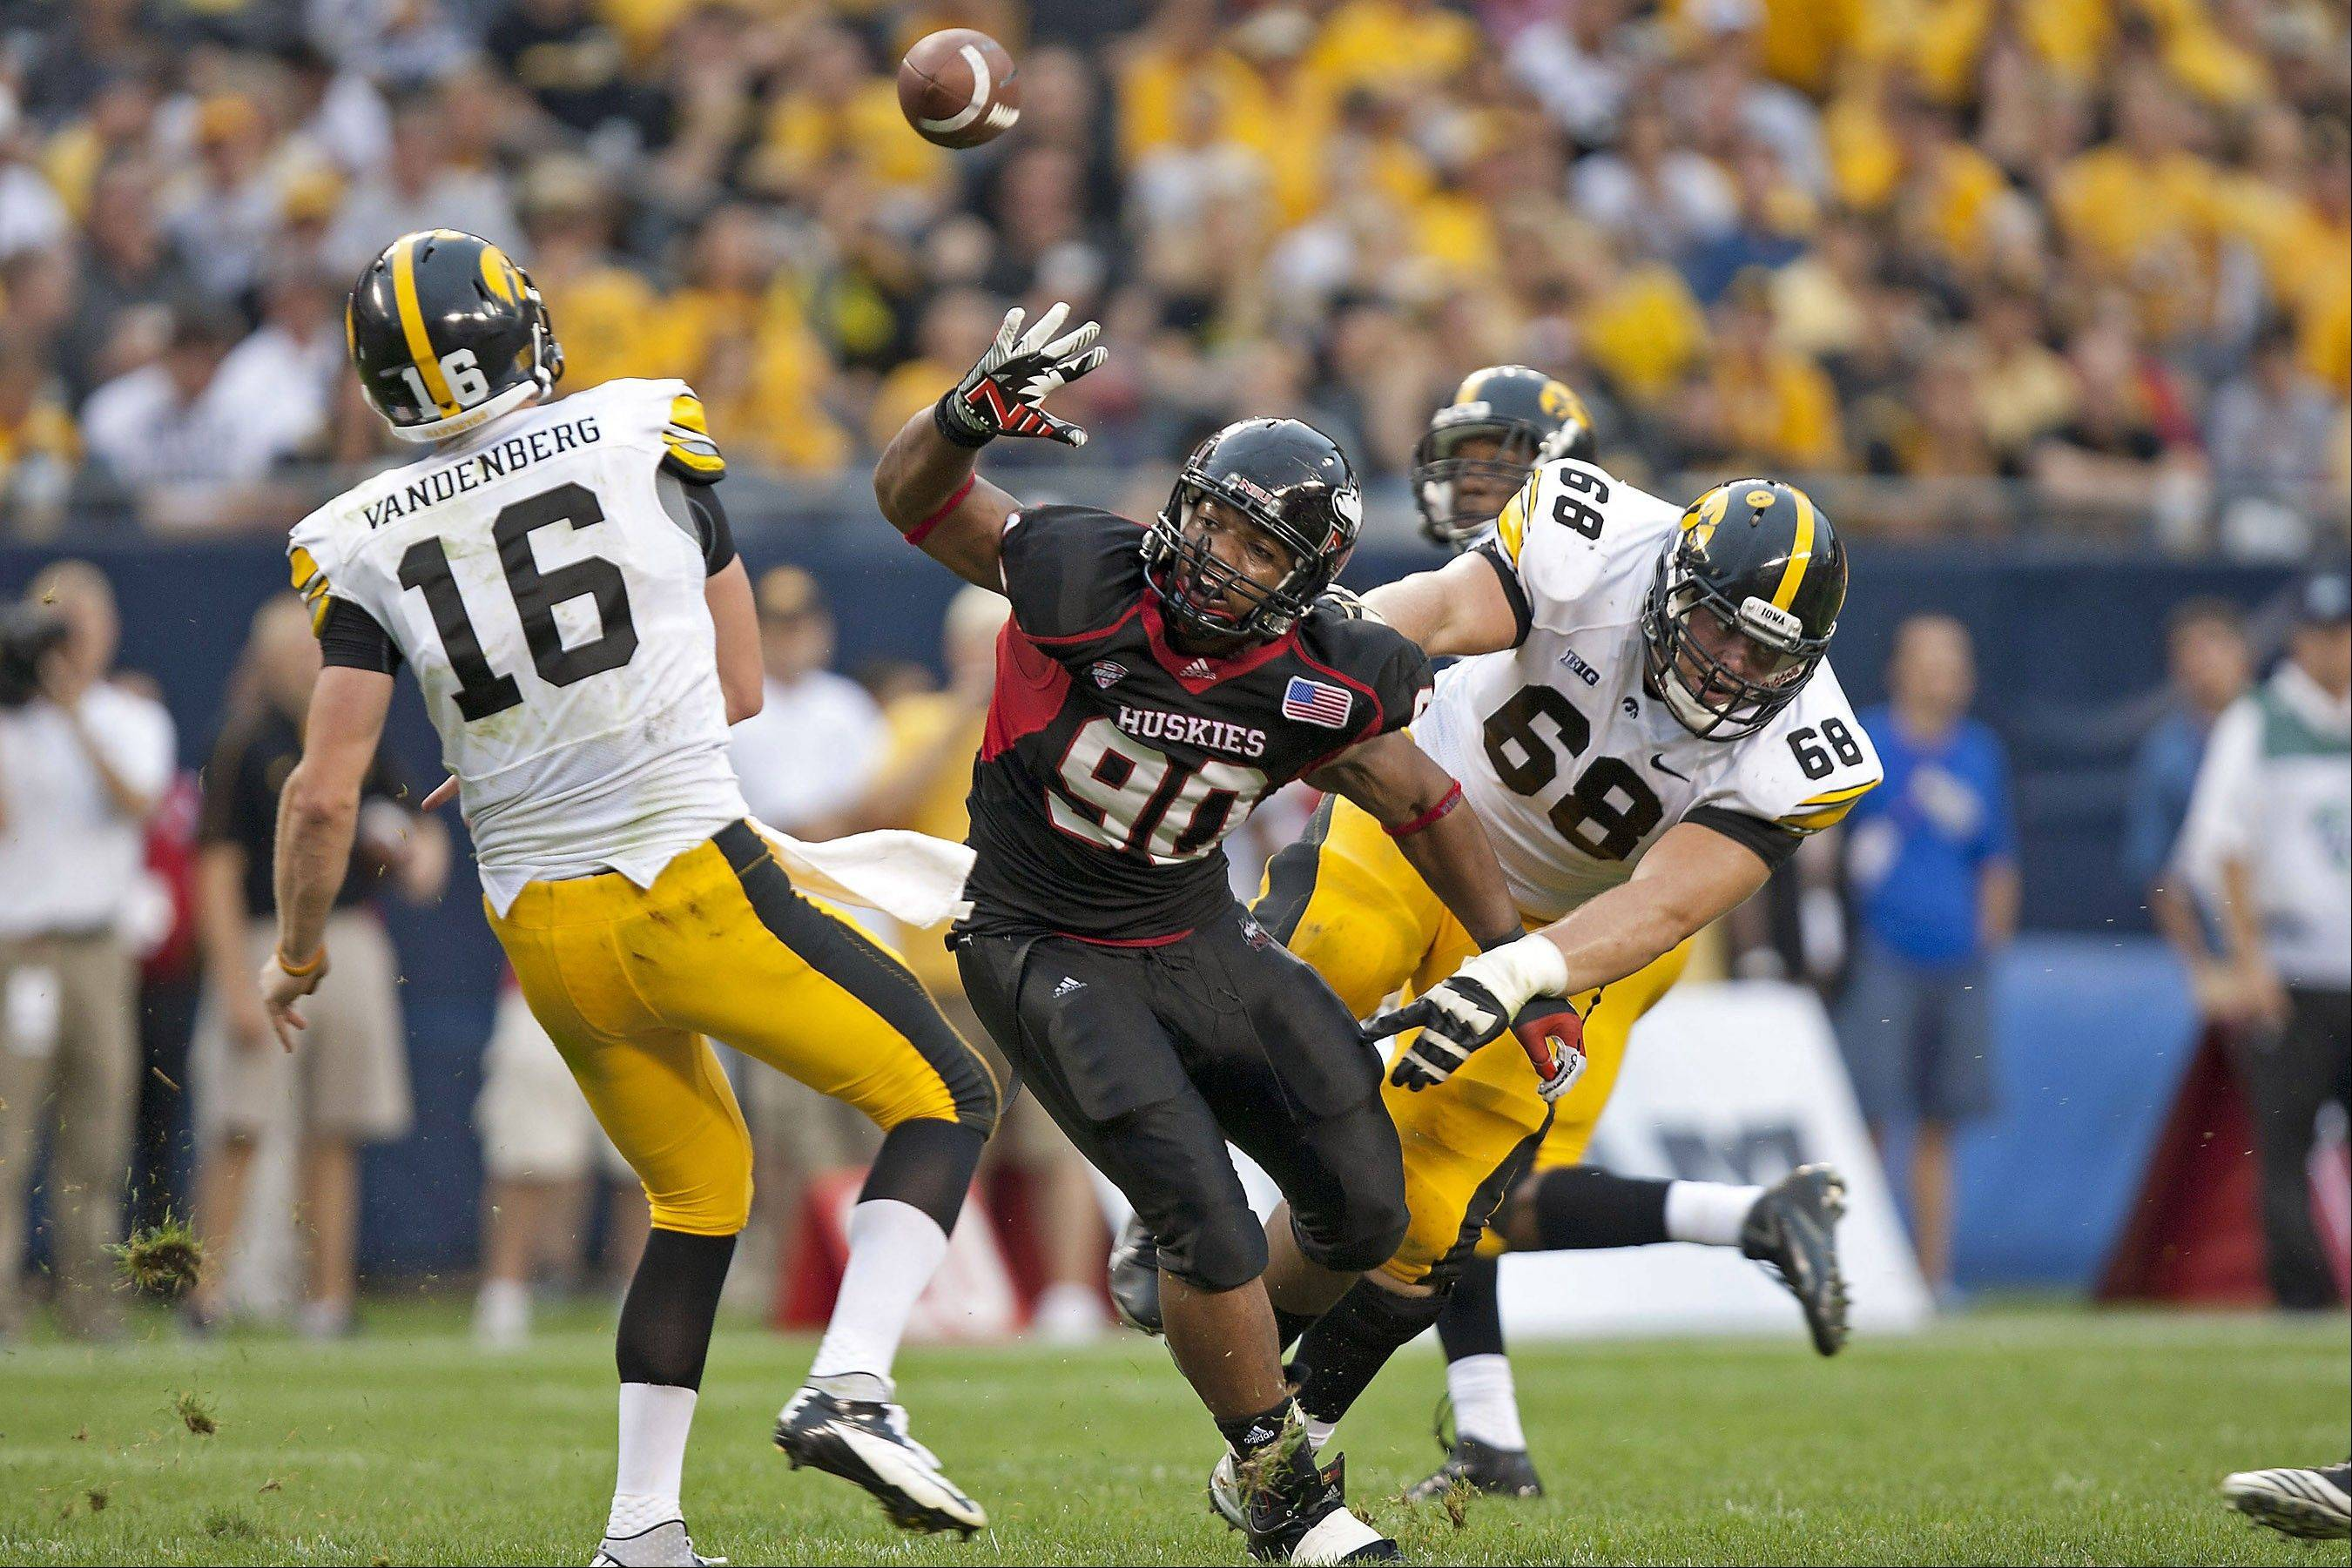 Northern Illinois defensive end Alan Baxter of Buffalo Grove put Iowa's quarterback under heavy pressure all game when they met for the season opener at Soldier Field. Baxter leads the team with 5 sacks.